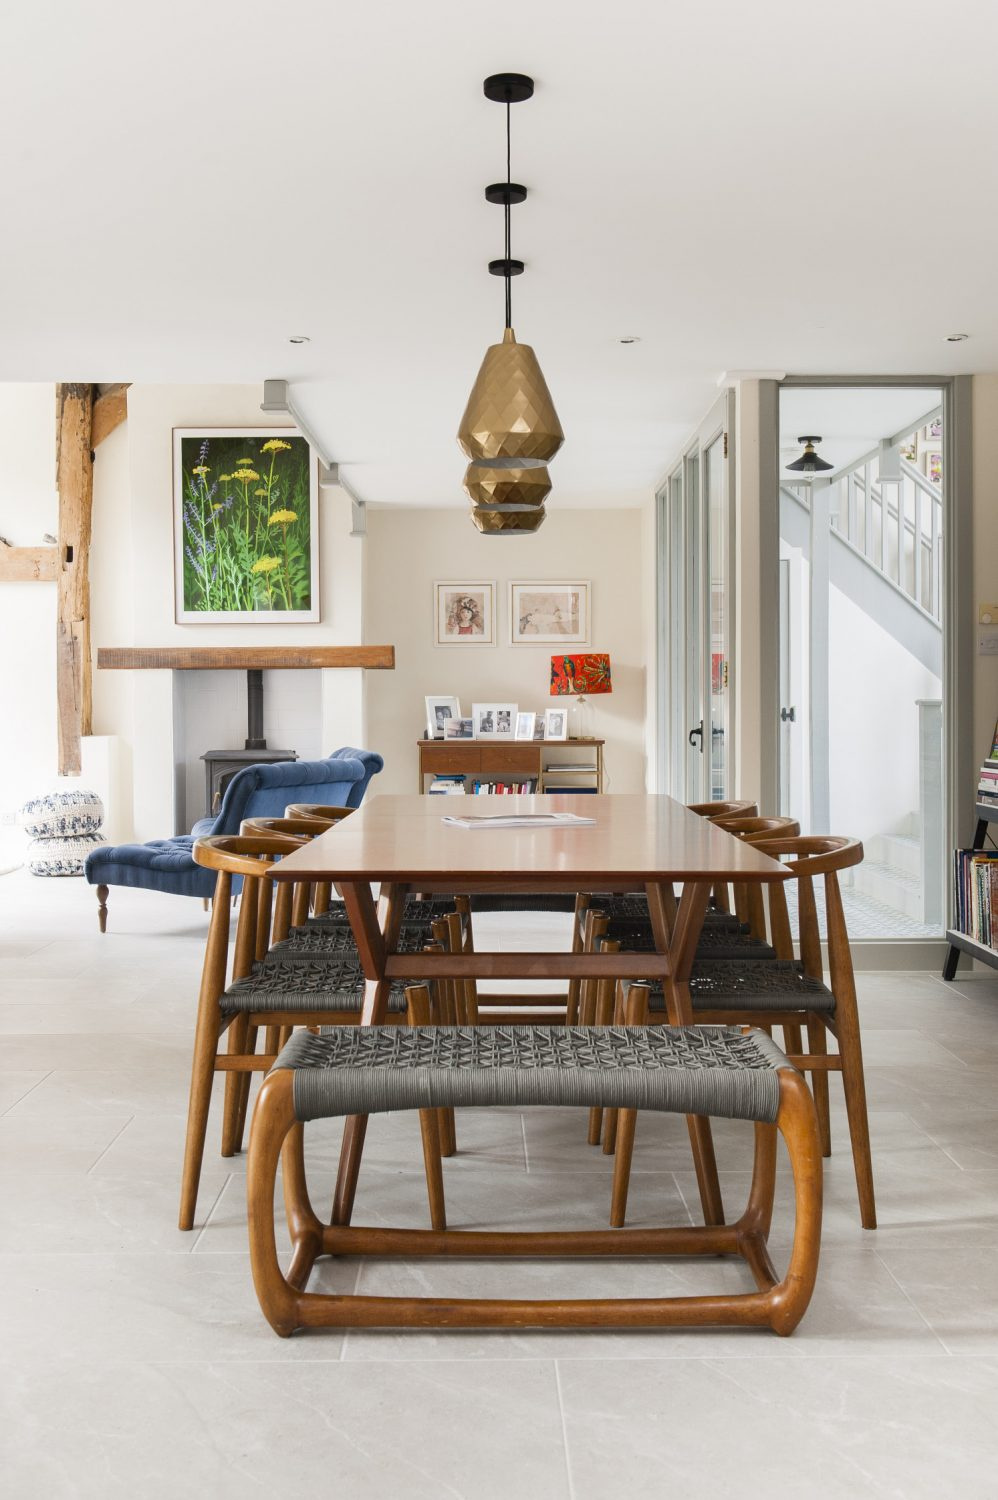 The couple bought the dining table and chairs from West Elm in Dubai.